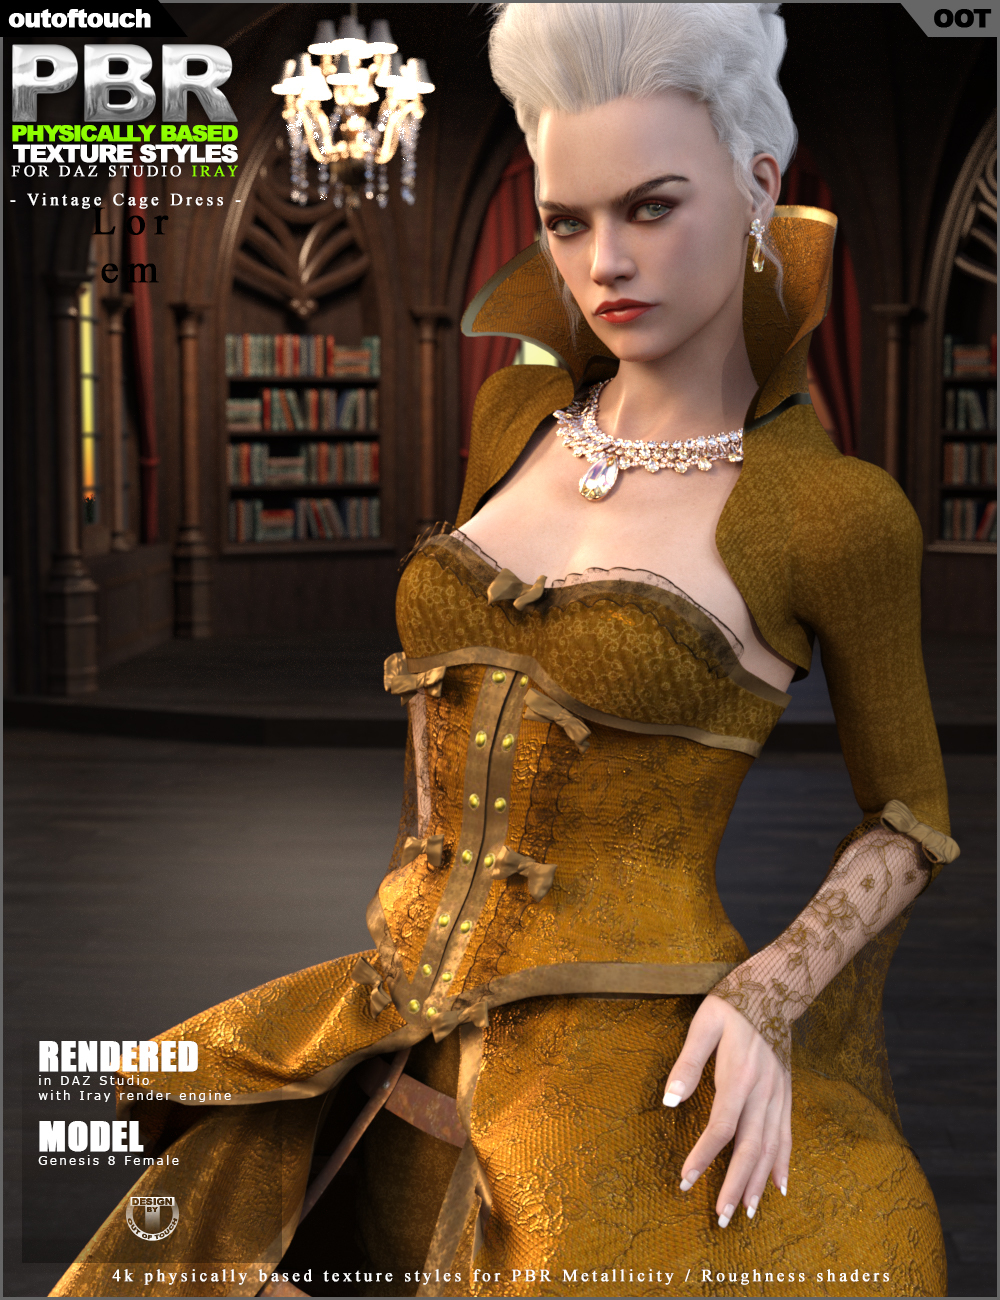 OOT PBR Texture Styles for Vintage Cage Dress